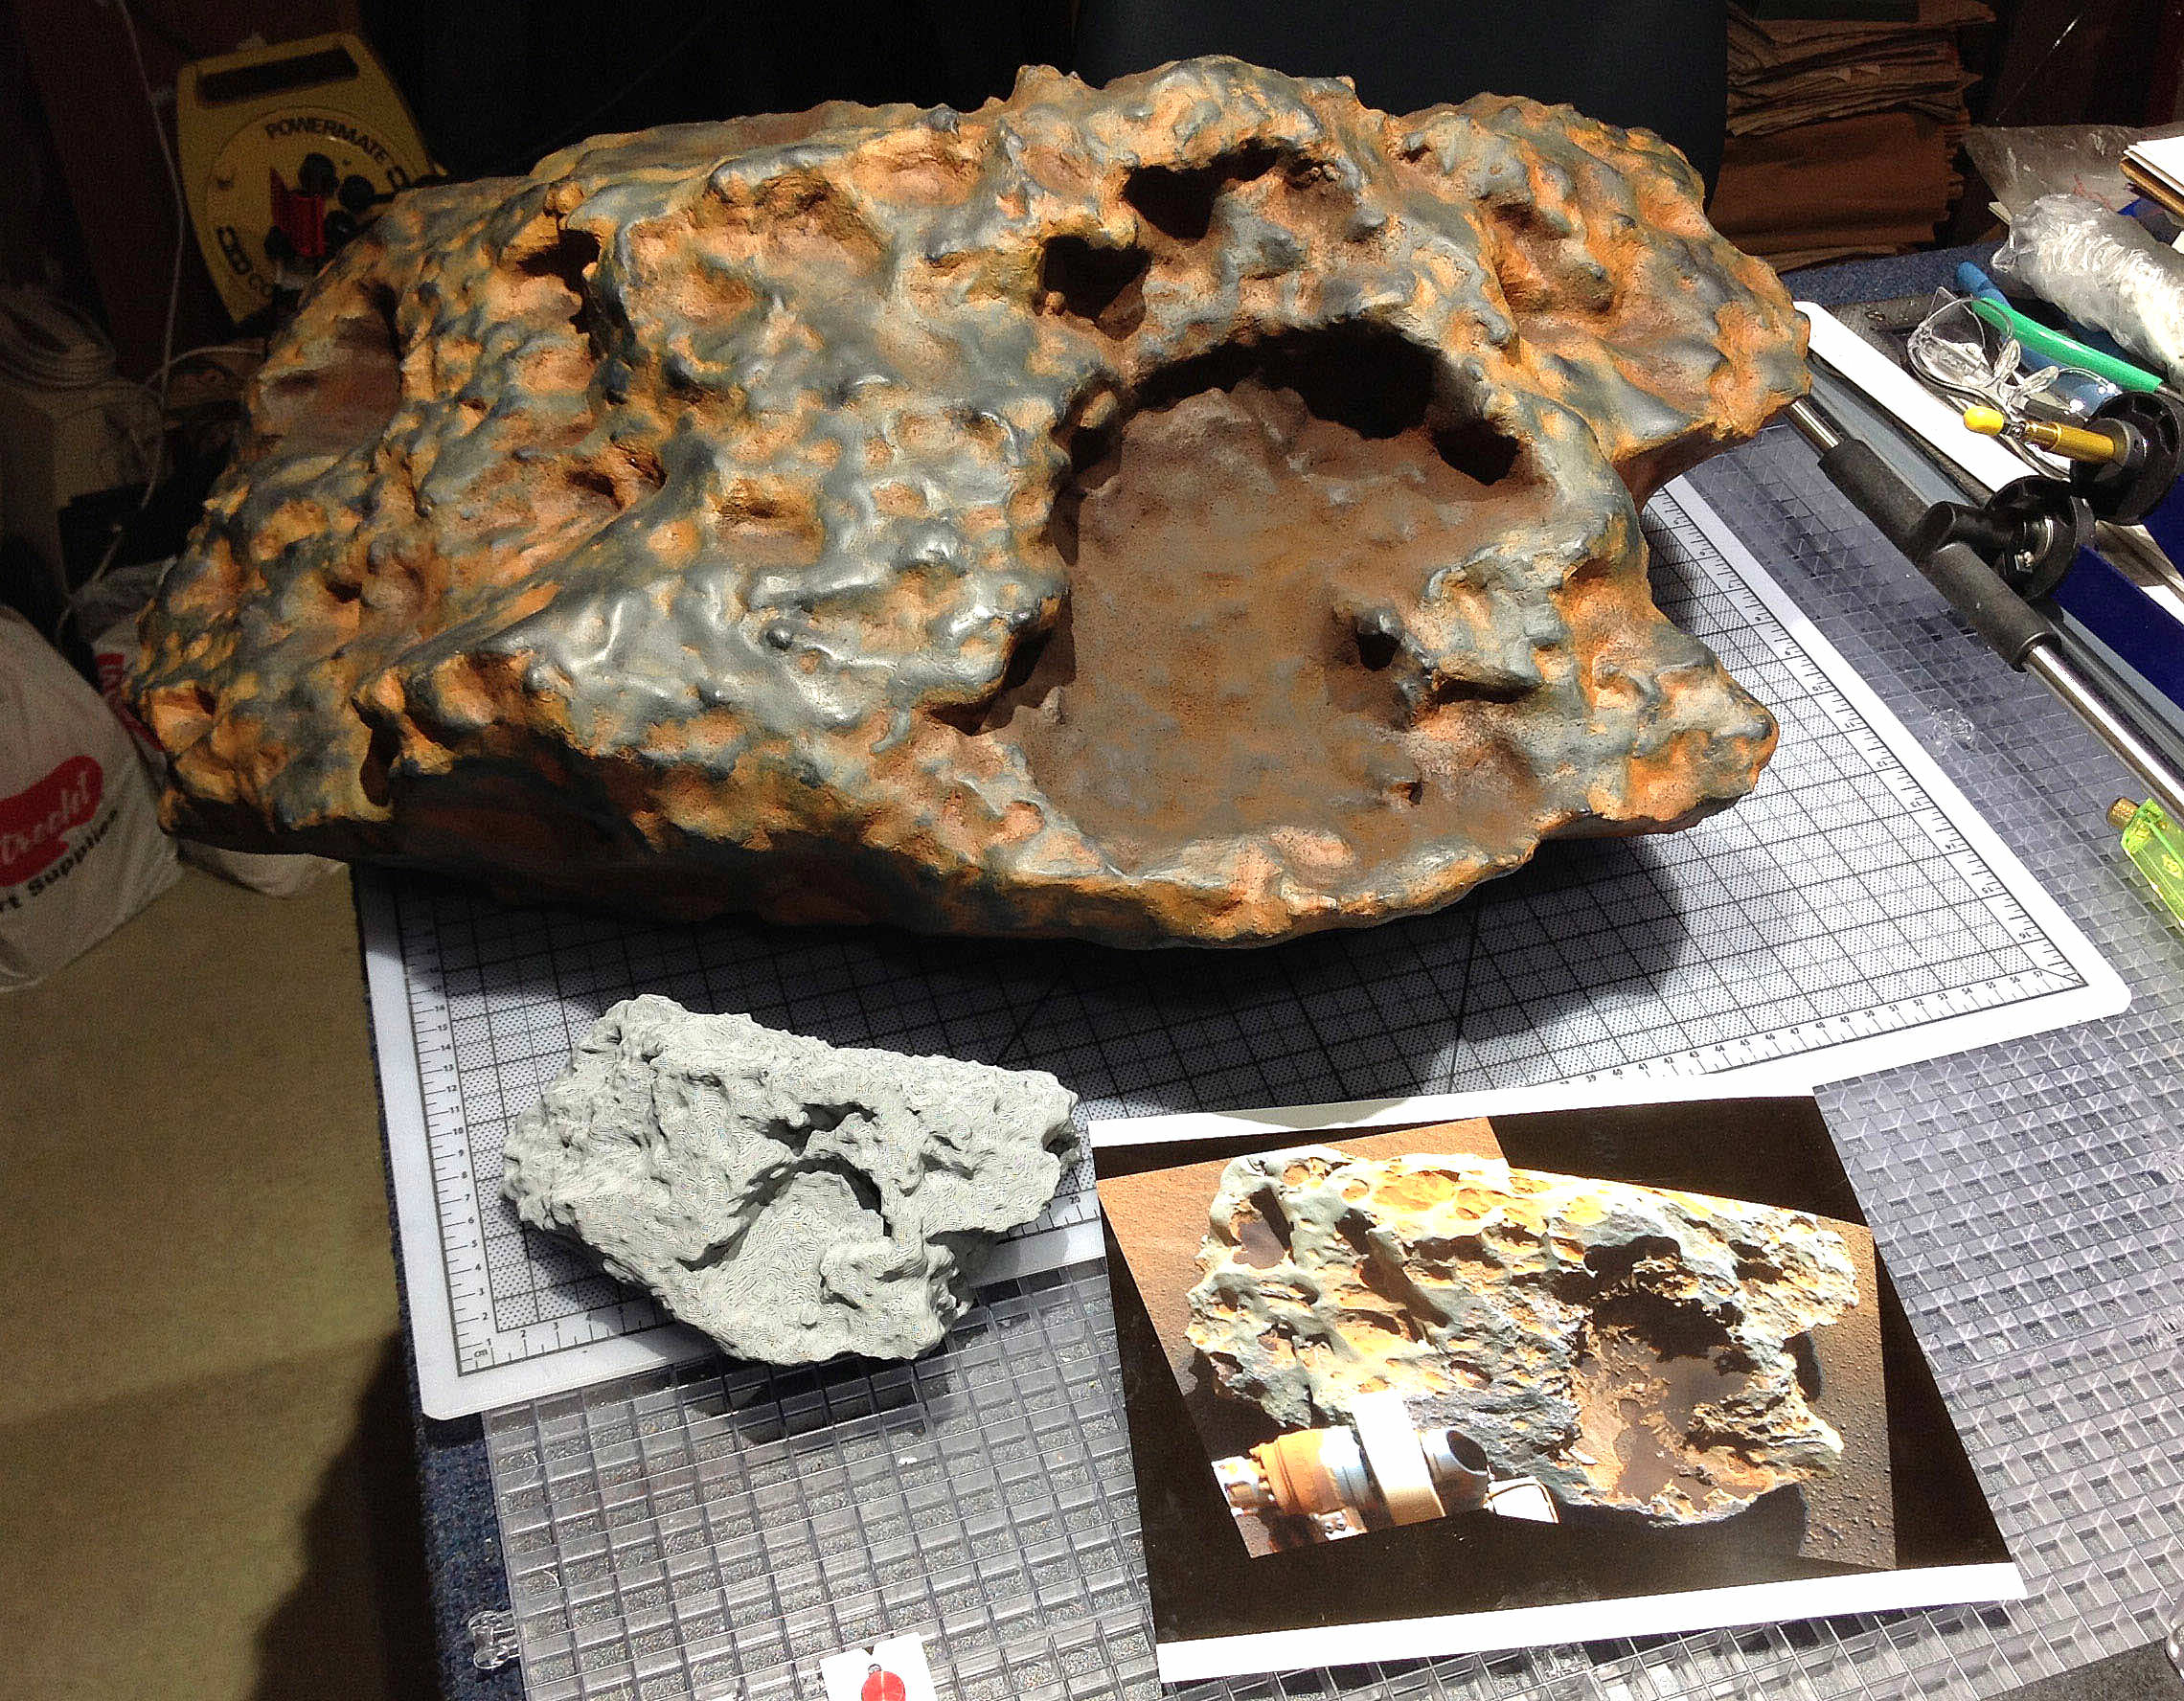 The 'Block Island' meteorite reproduced in plastic at NASA's Jet Propulsion Laboratory. Credit: NASA/JPL-Caltech